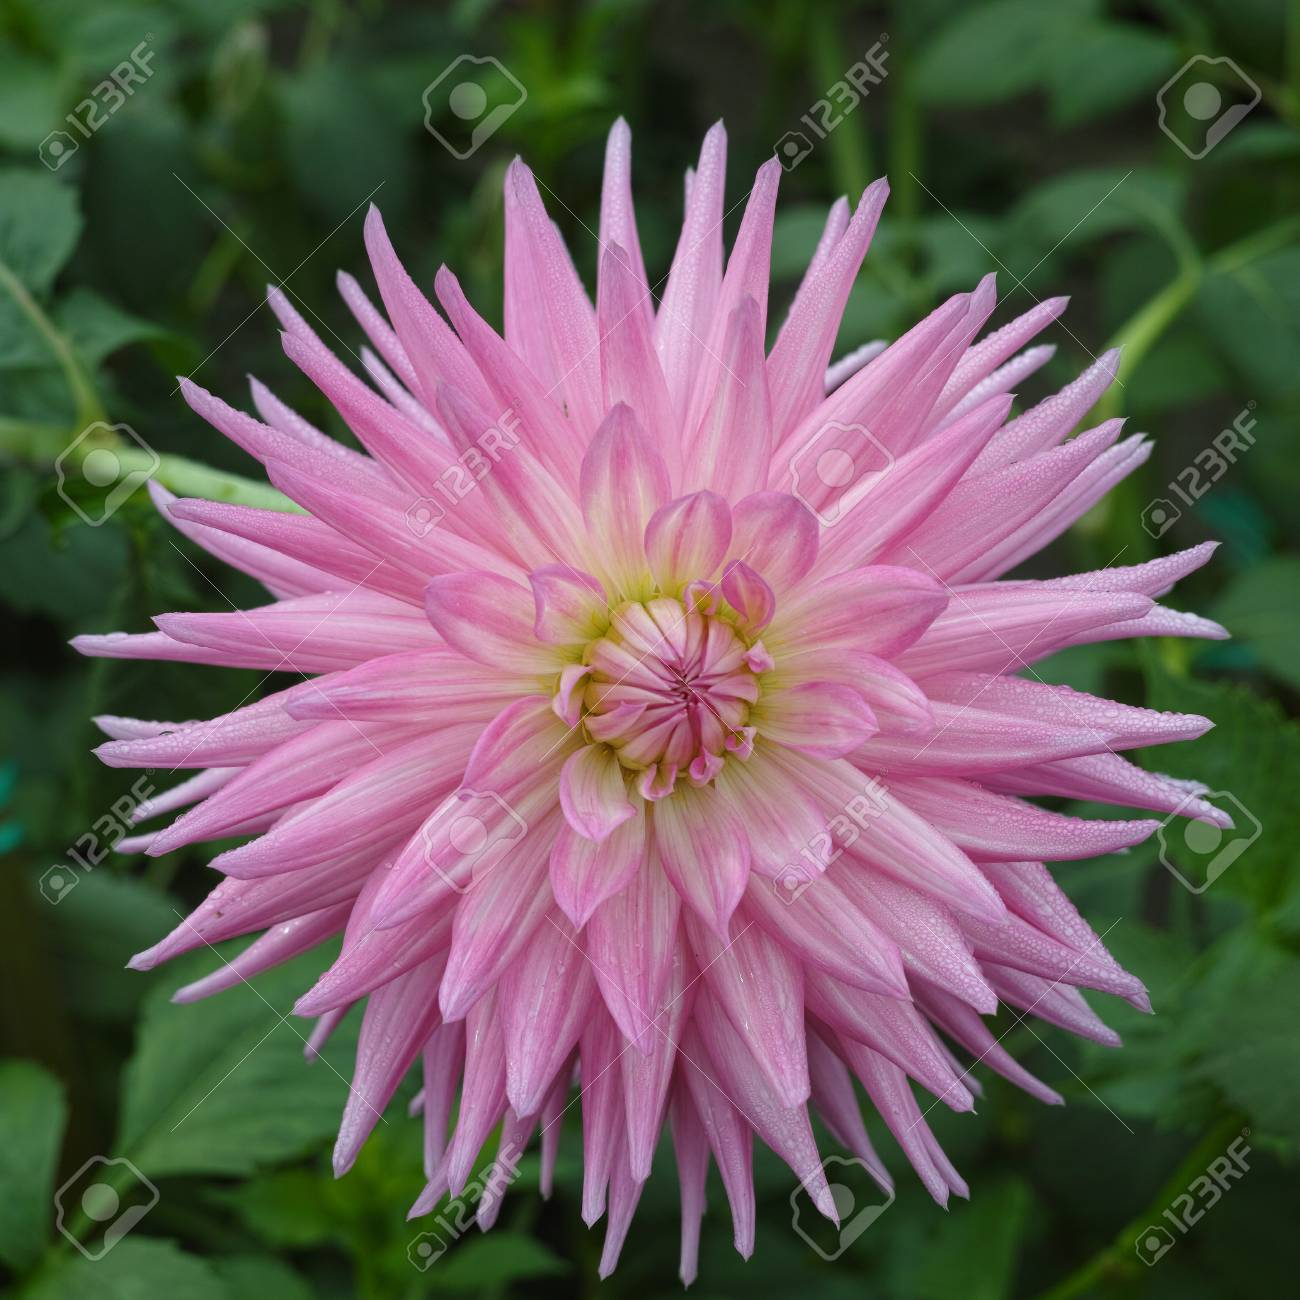 Pink Rose Dahlia Flower On The Plant, Beautiful Bouquet Or ...